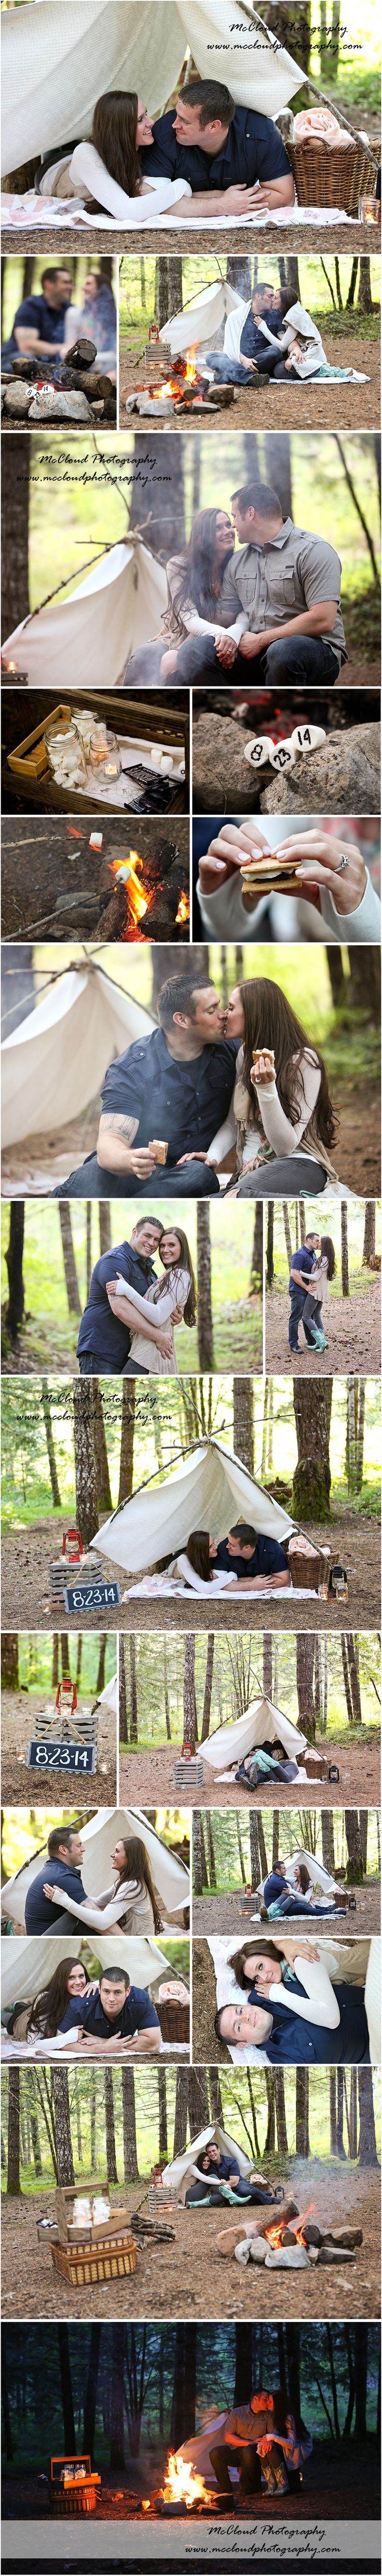 cheap chrome hearts sunglasses 2015 summer Intense       engagement photo session      for the granola bars